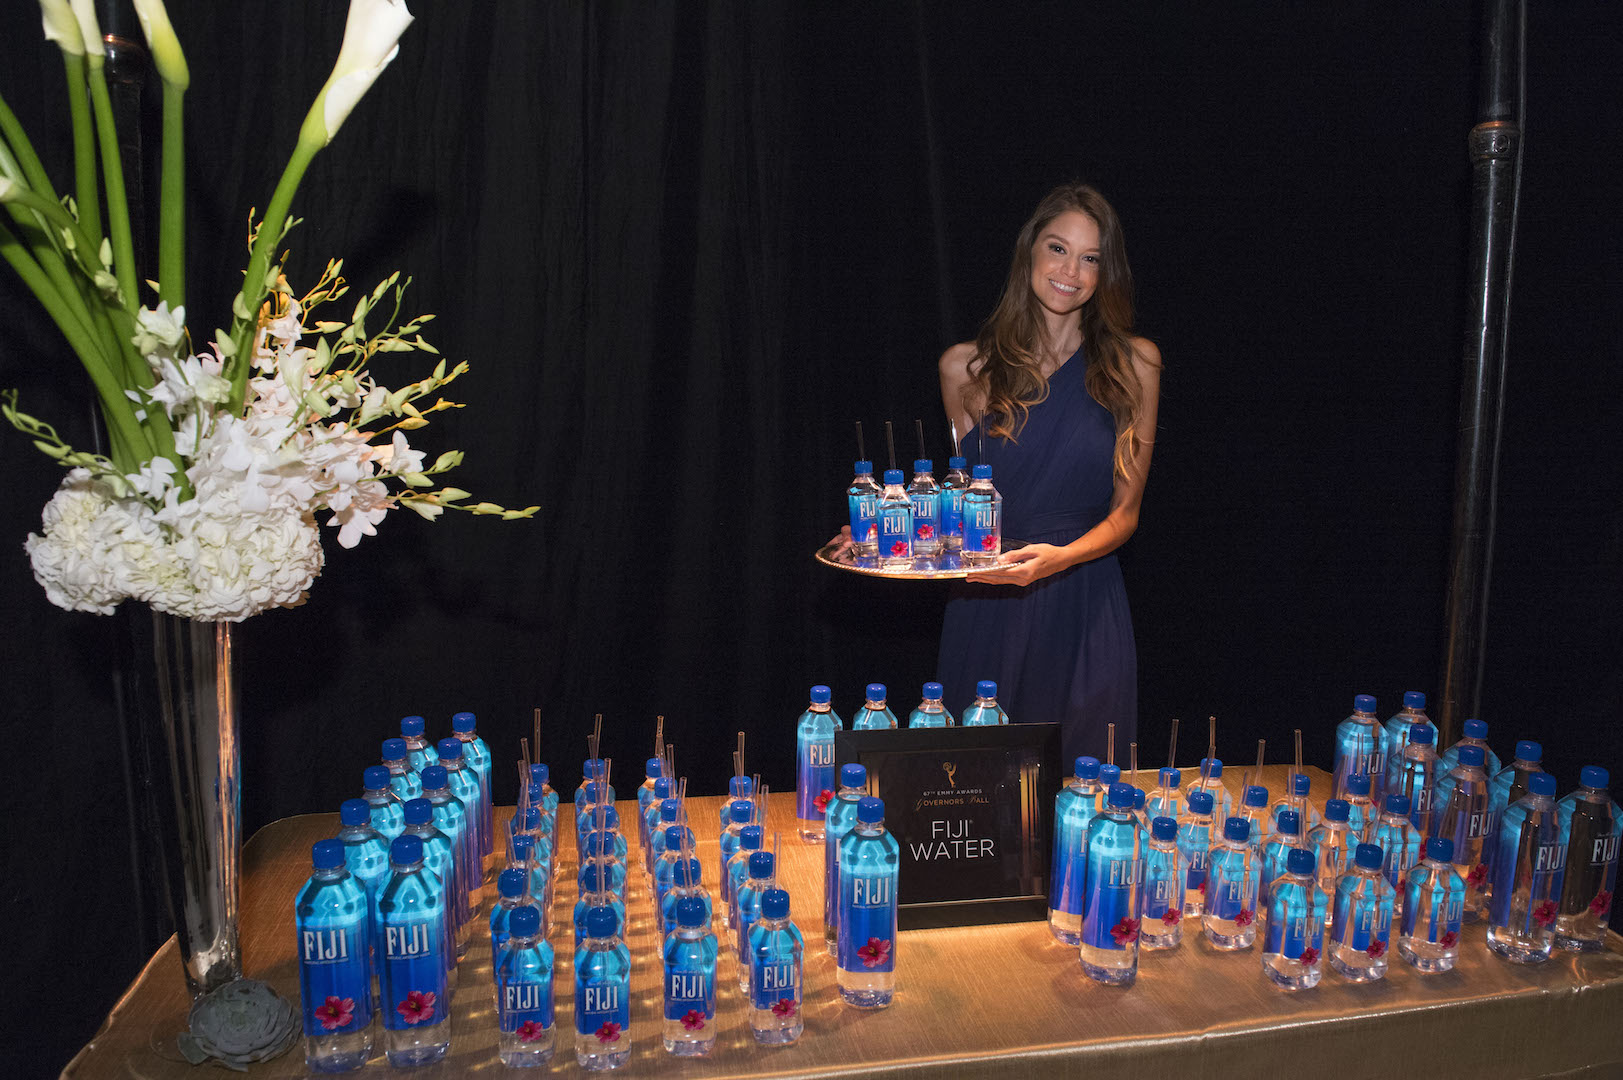 Fiji Water display seen at 67th Emmy Awards Governors Ball Preview at the Los Angeles Convention Center on Wednesday, September 9, 2015, in Los Angeles, California. (Photo by Phil McCarten/Invision for Academy of Television Arts and Sciences/AP Images)